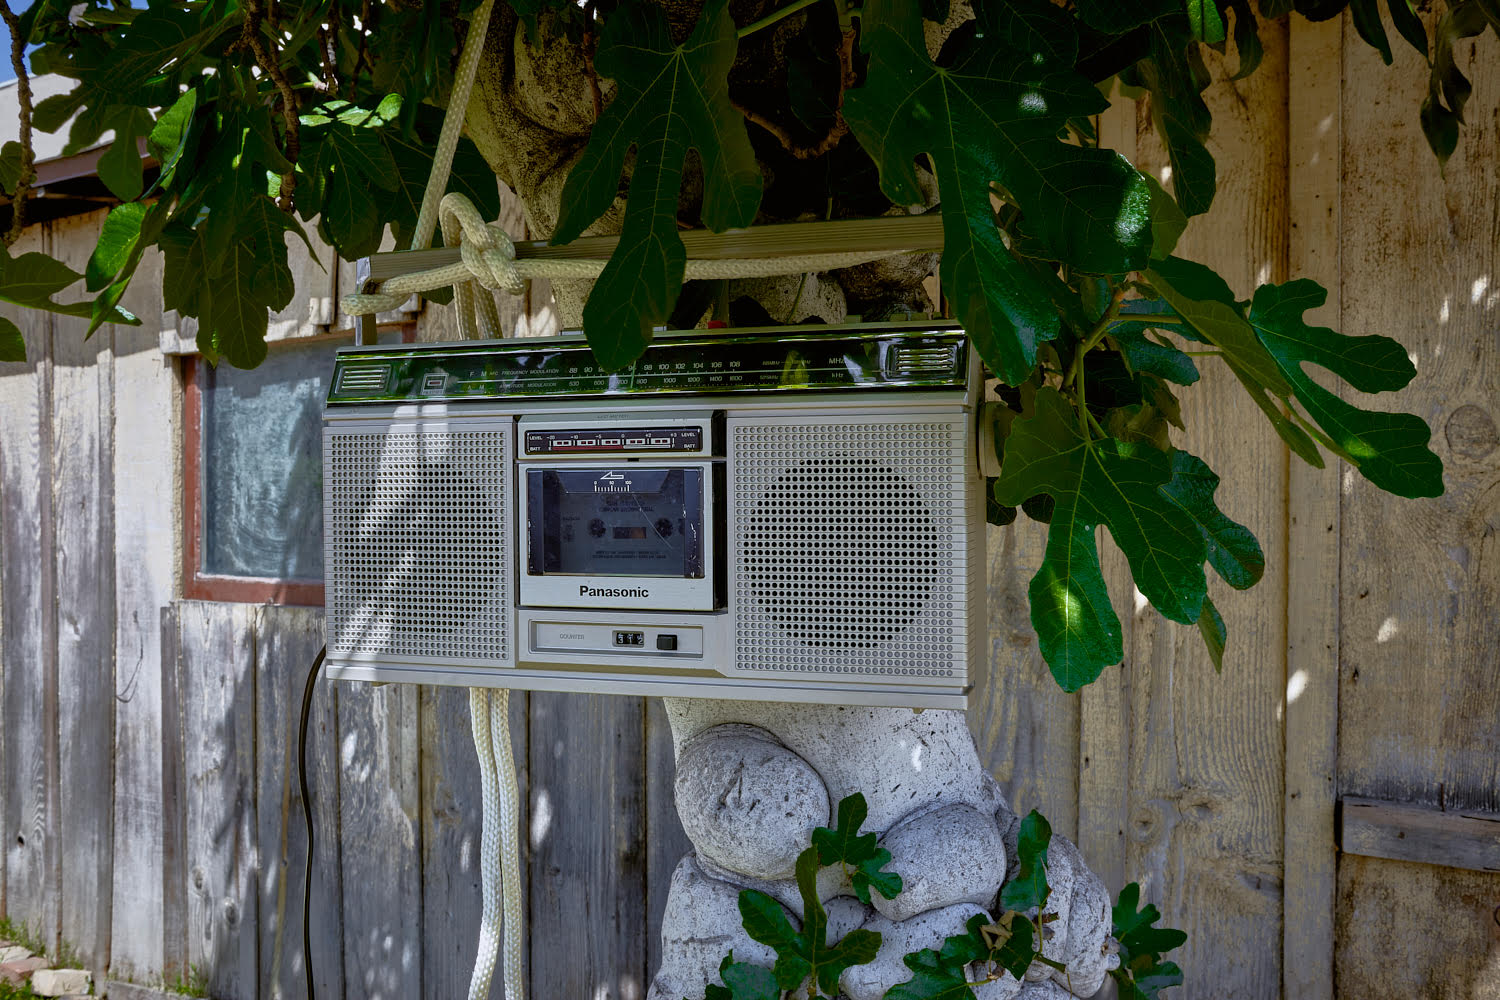 Name Of Piece: Stilll life with songs  Size of piece: Variable  Medium: Cassette player and cassette tape  Photographed by:  Veli -Matti Hoikka  Location, Year: Reserve Ames, Los Angeles, CA, 2017